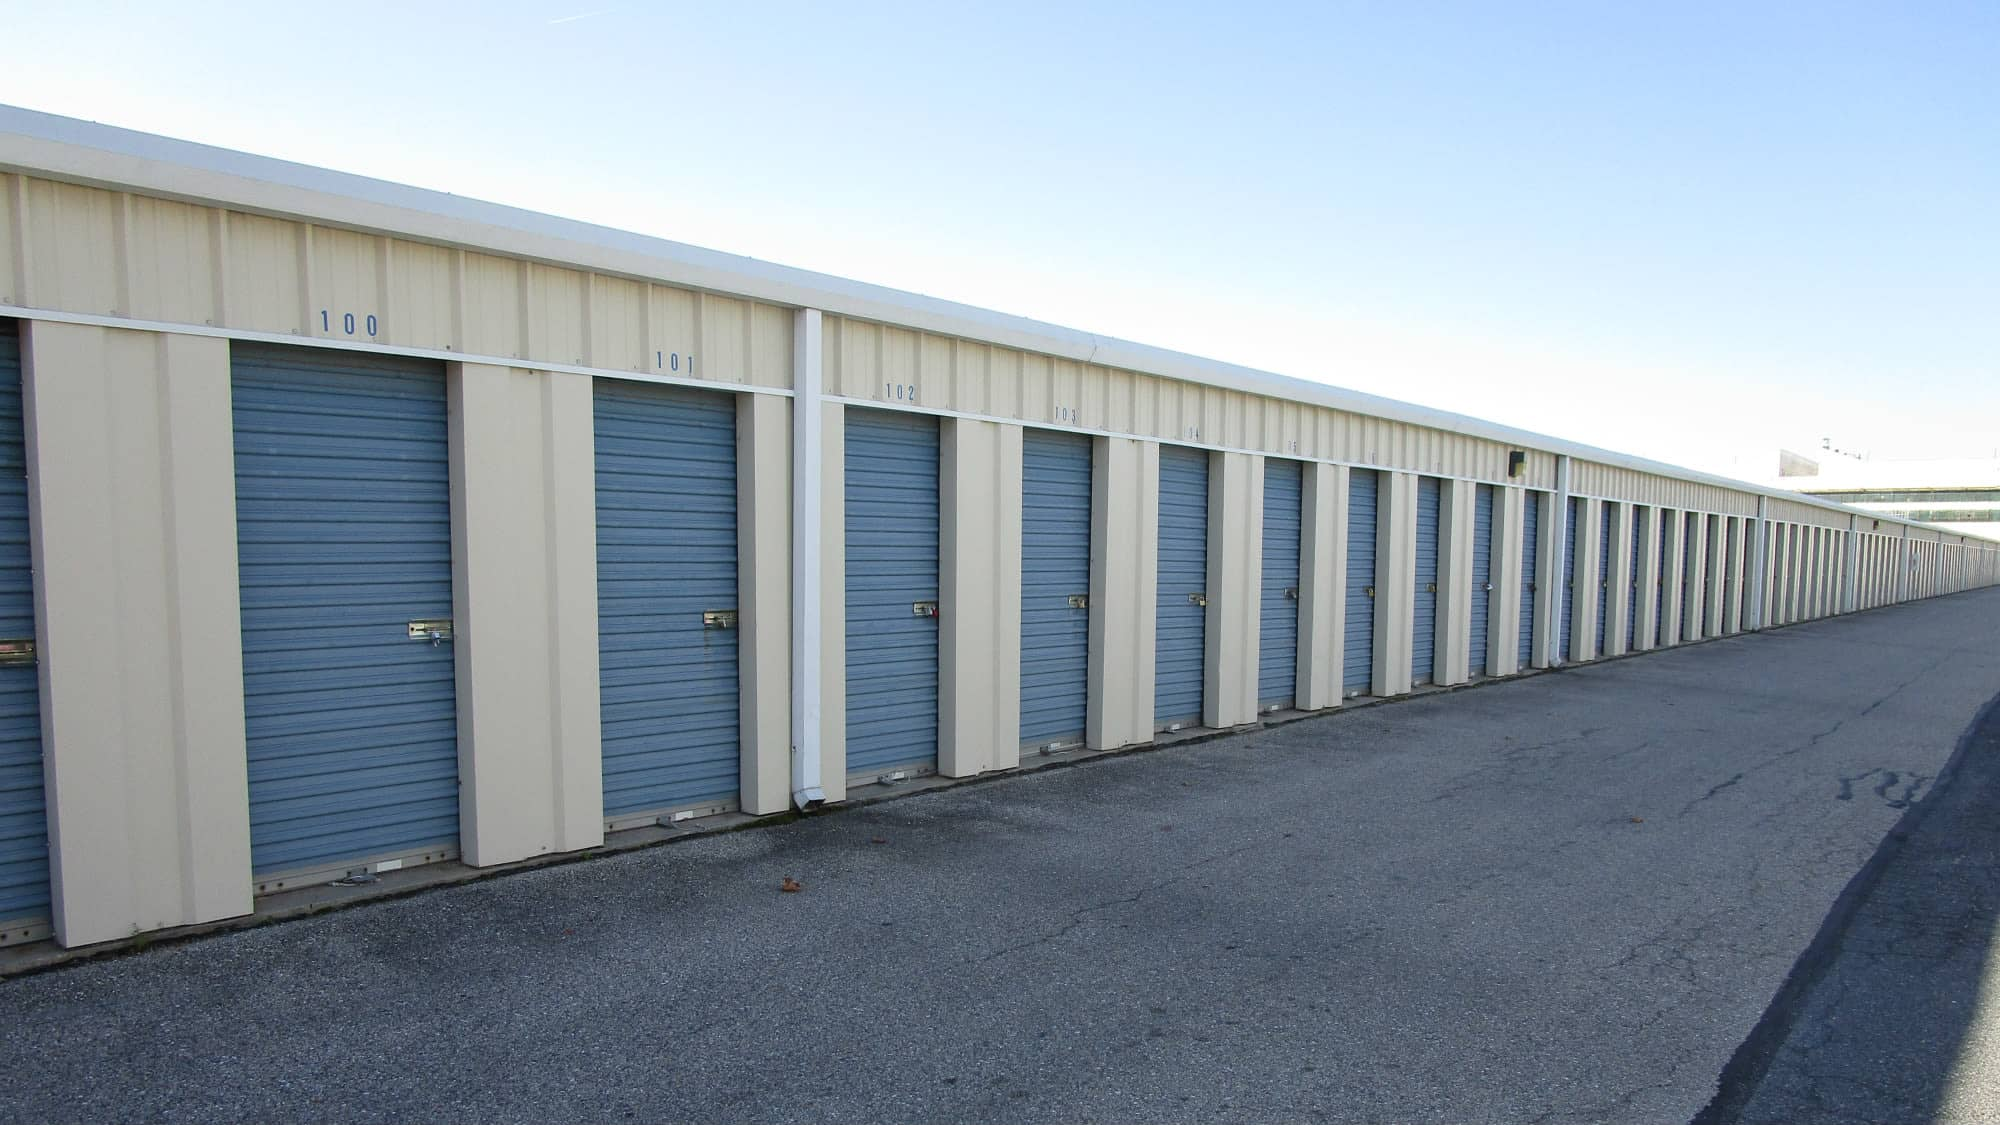 Ground-level units at Self Storage Plus in Middle River, Maryland